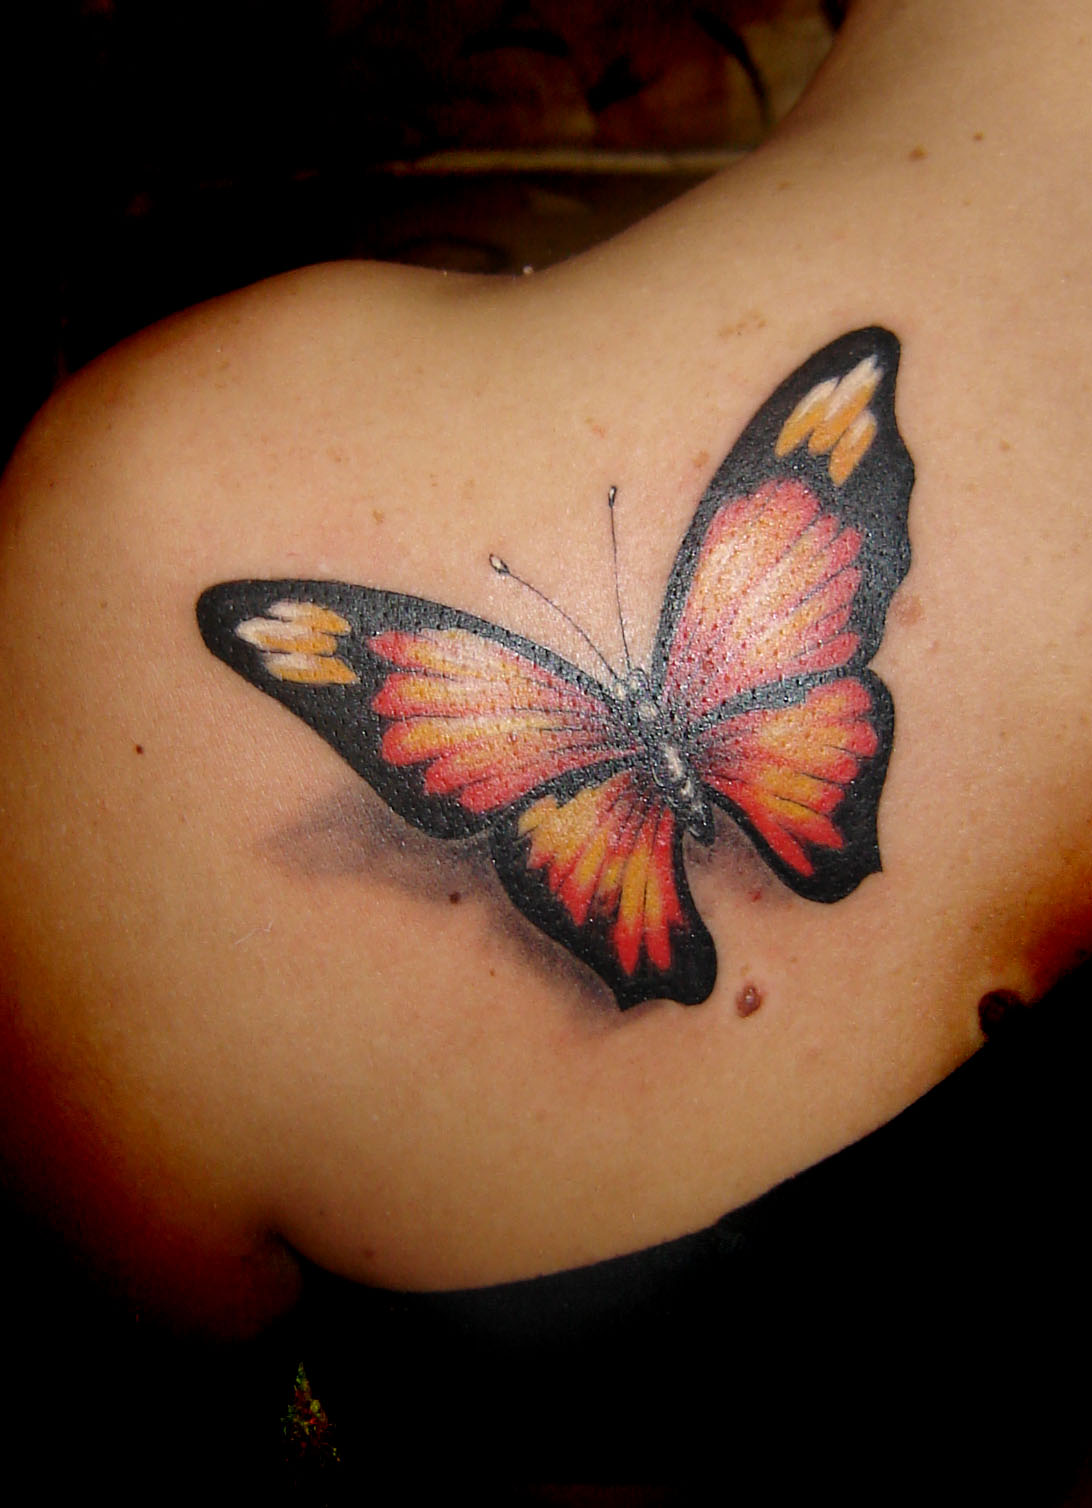 But freedom itself is another meaning of butterfly tattoo design